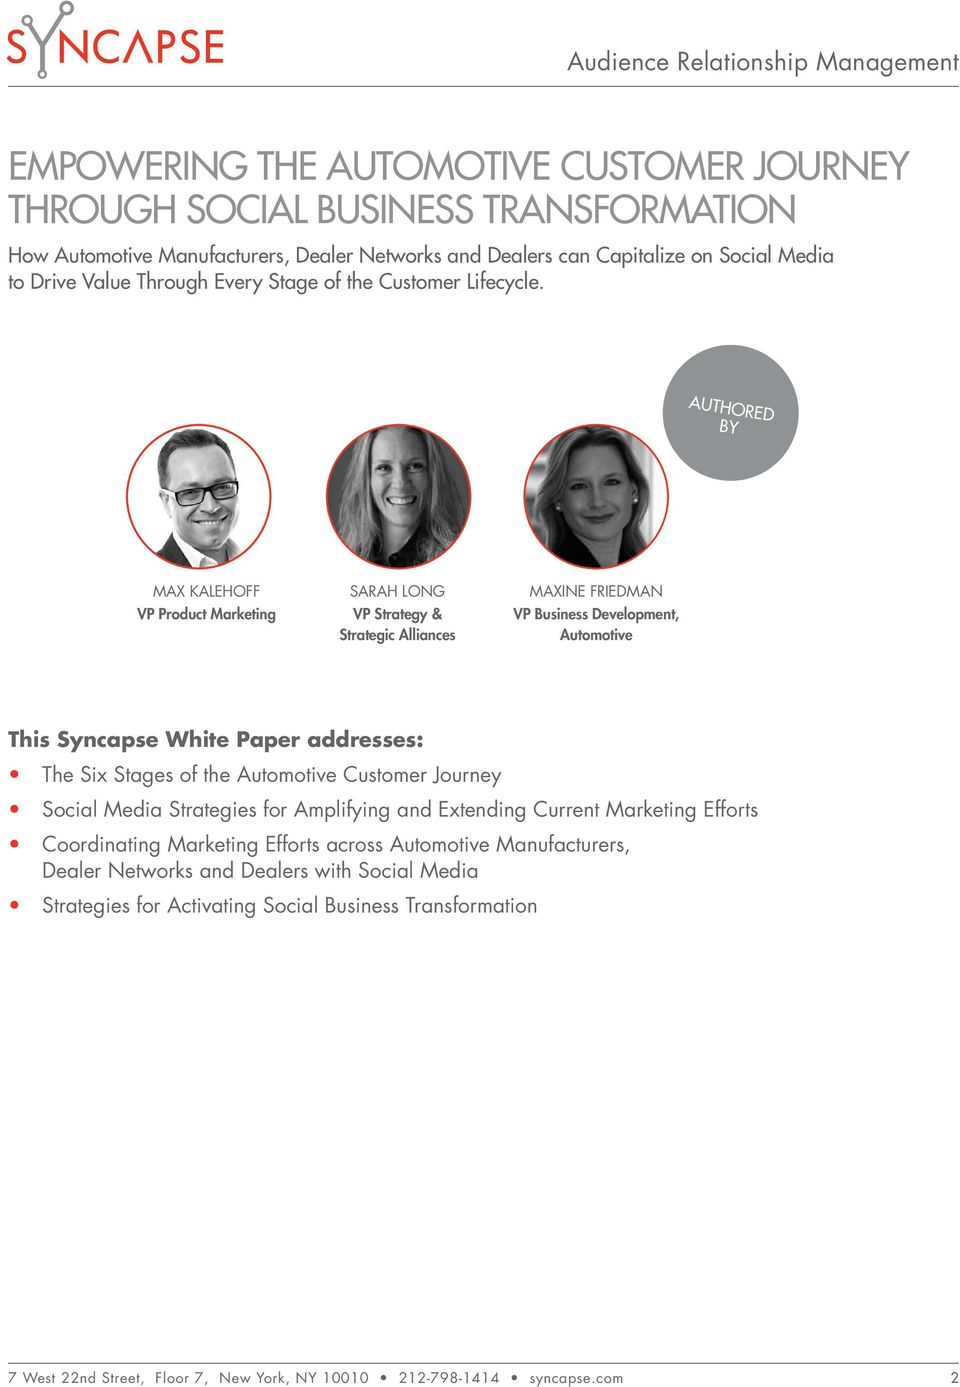 Authored by Max Kalehoff VP Product Marketing Sarah Long VP Strategy & Strategic Alliances Maxine Friedman VP Business Development, Automotive This Syncapse White Paper